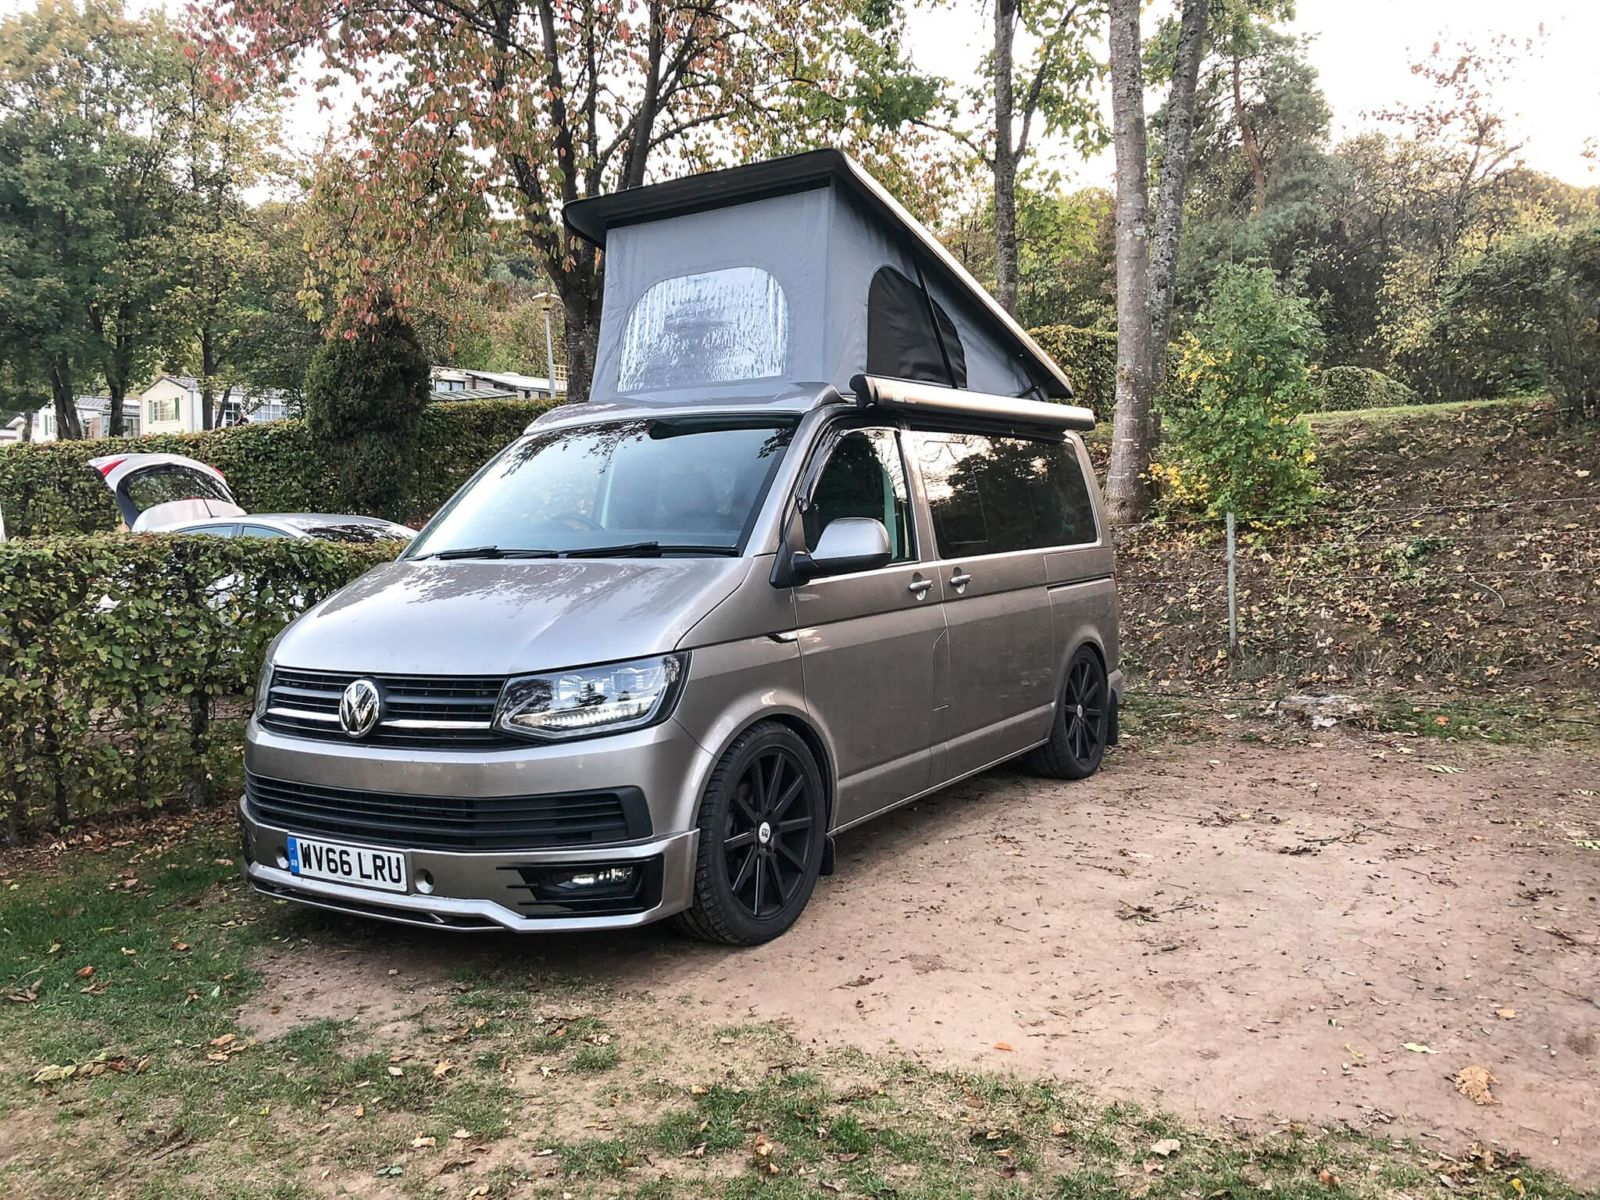 Vanworx Customer VW Story